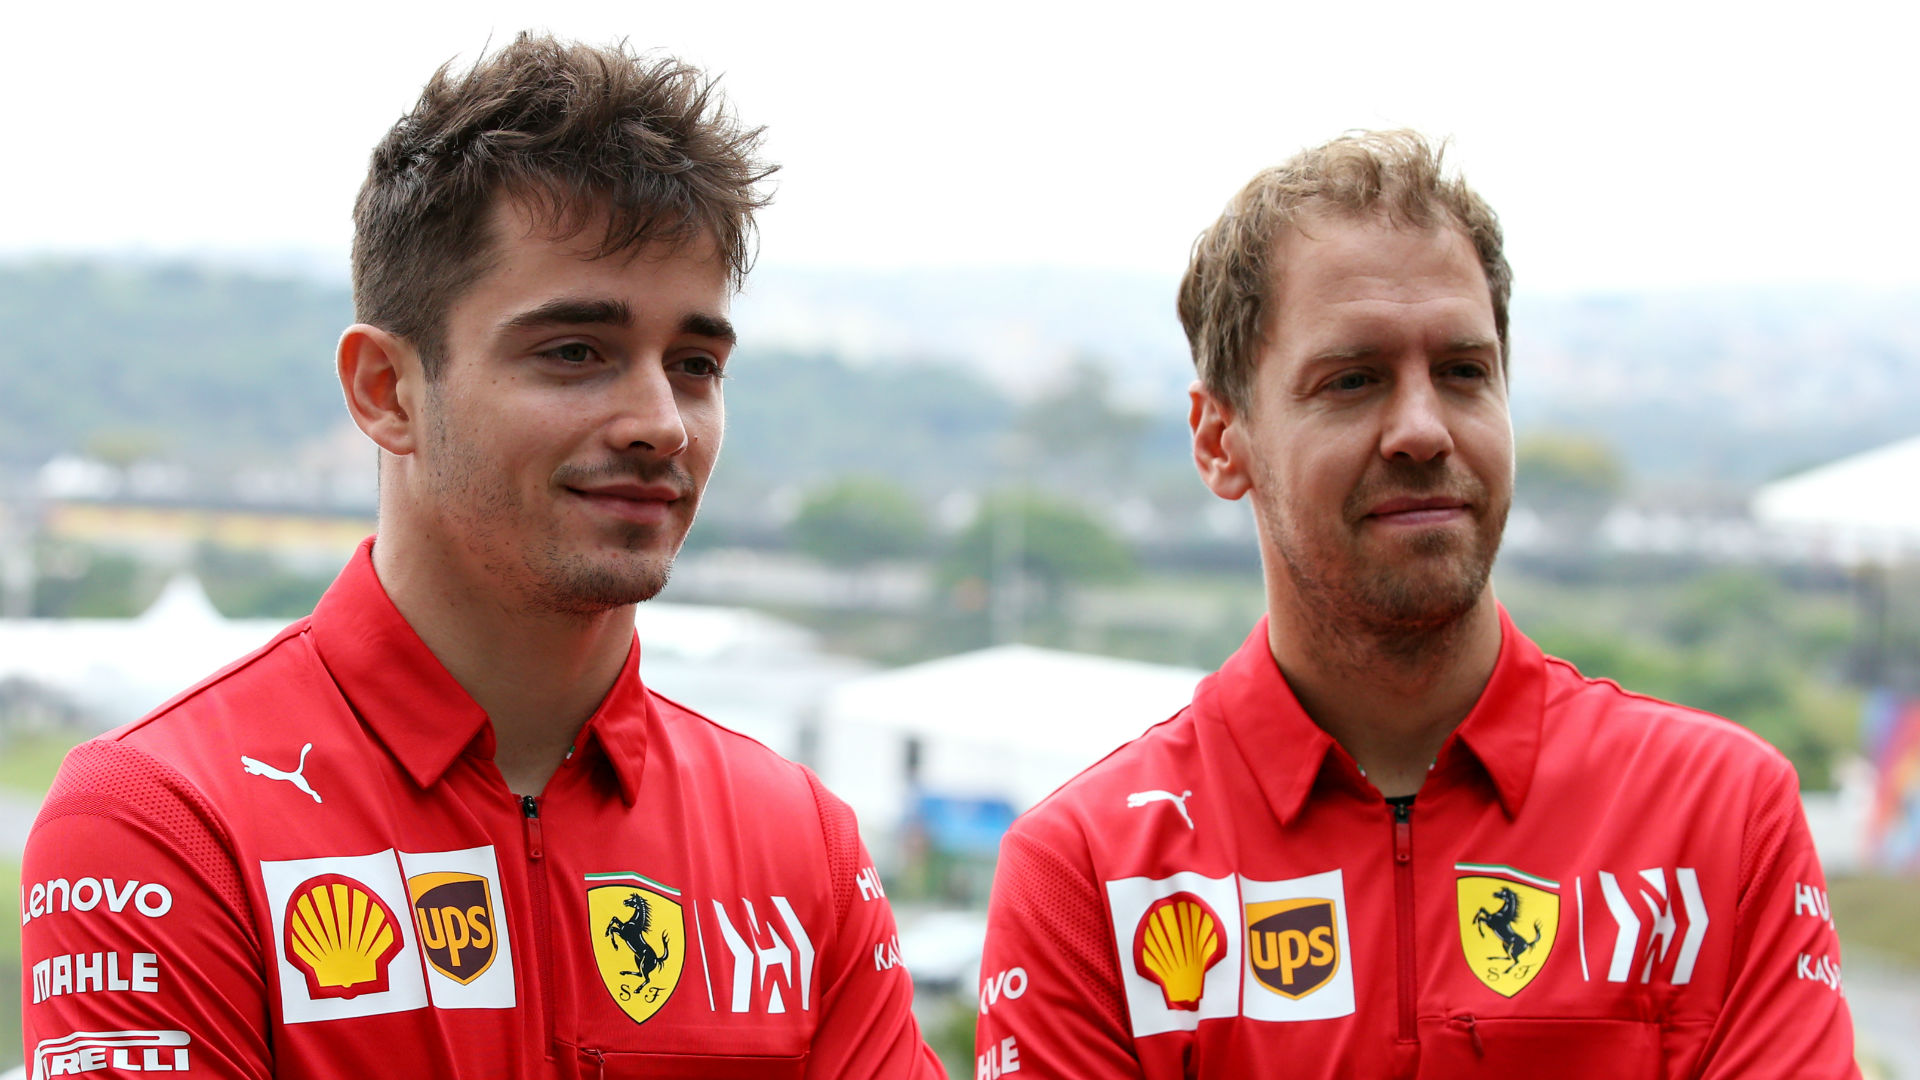 Leclerc expresses gratitude to Vettel after signing new Ferrari deal